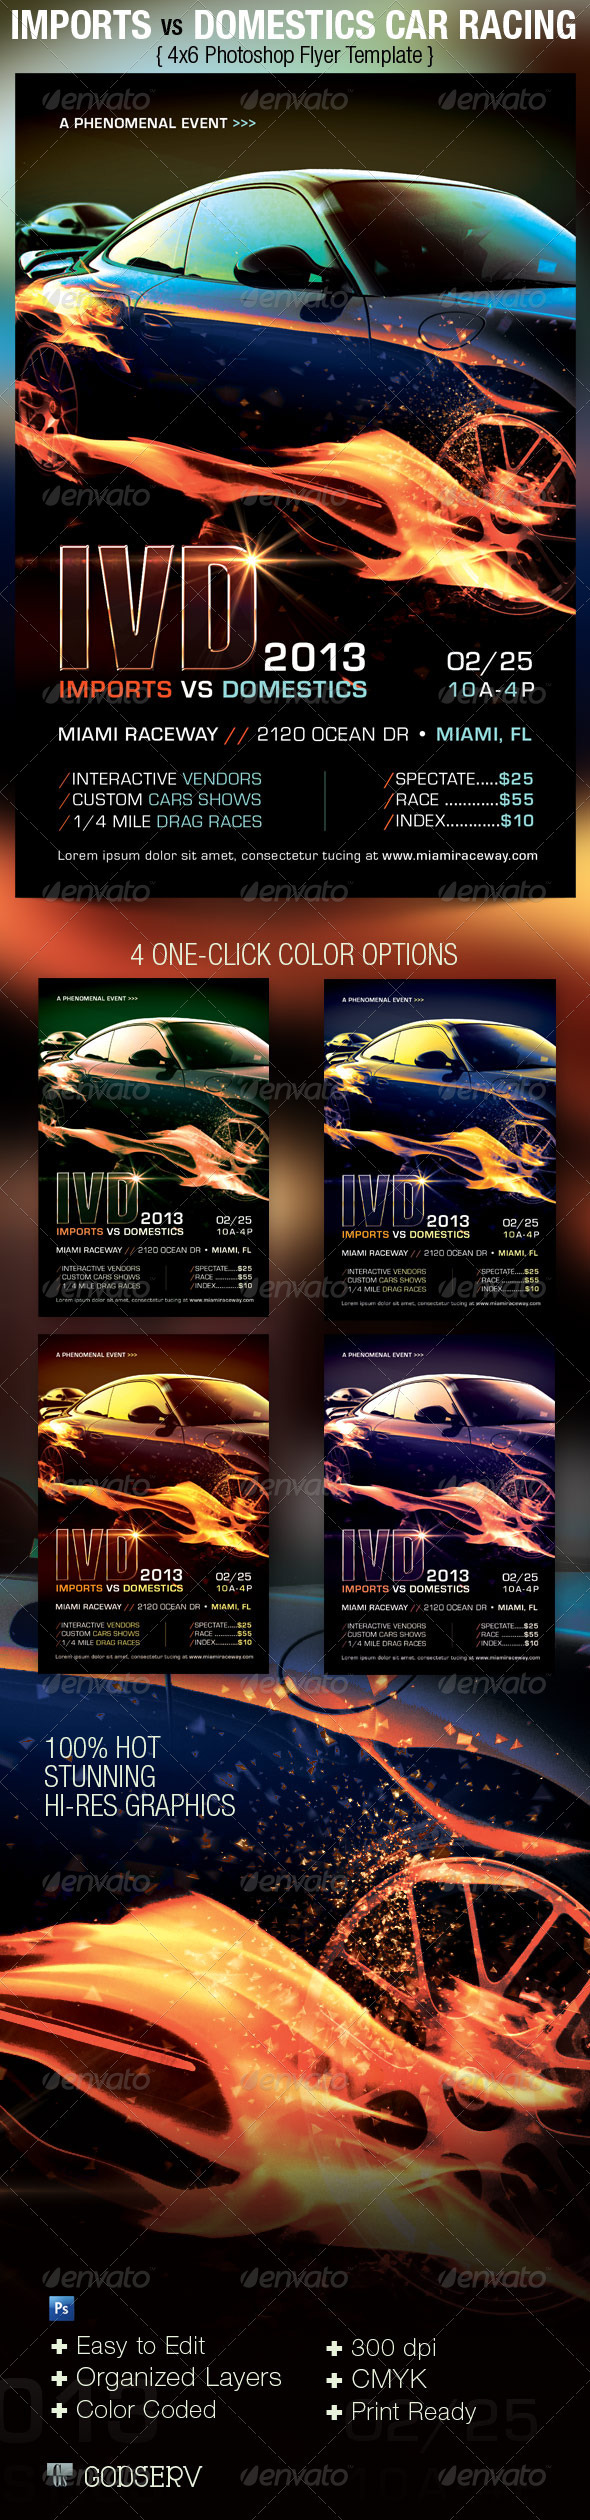 Car Racing Flyer Template   Sports Events  Car Flyer Template